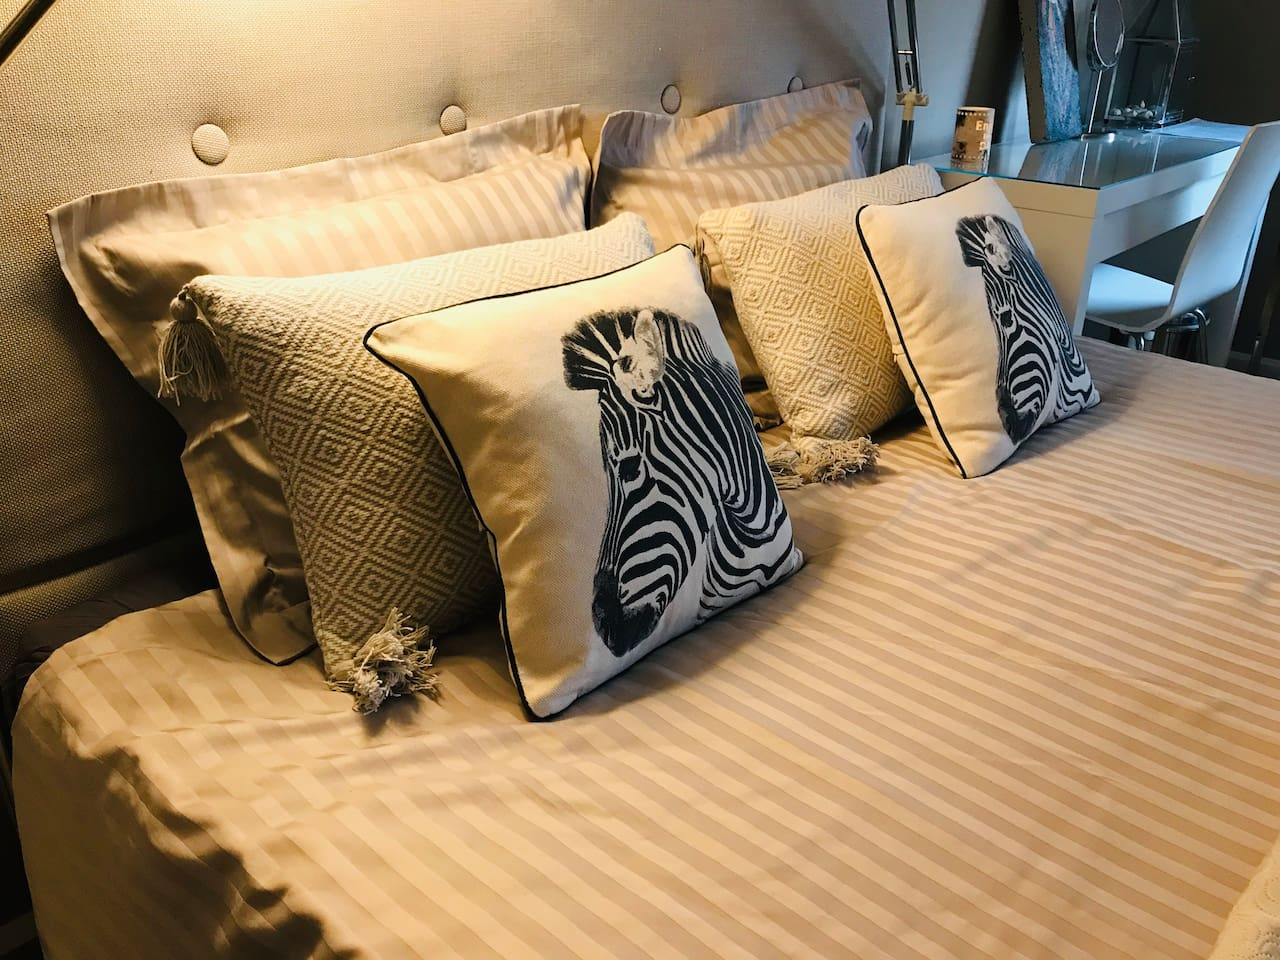 King Size continental bed